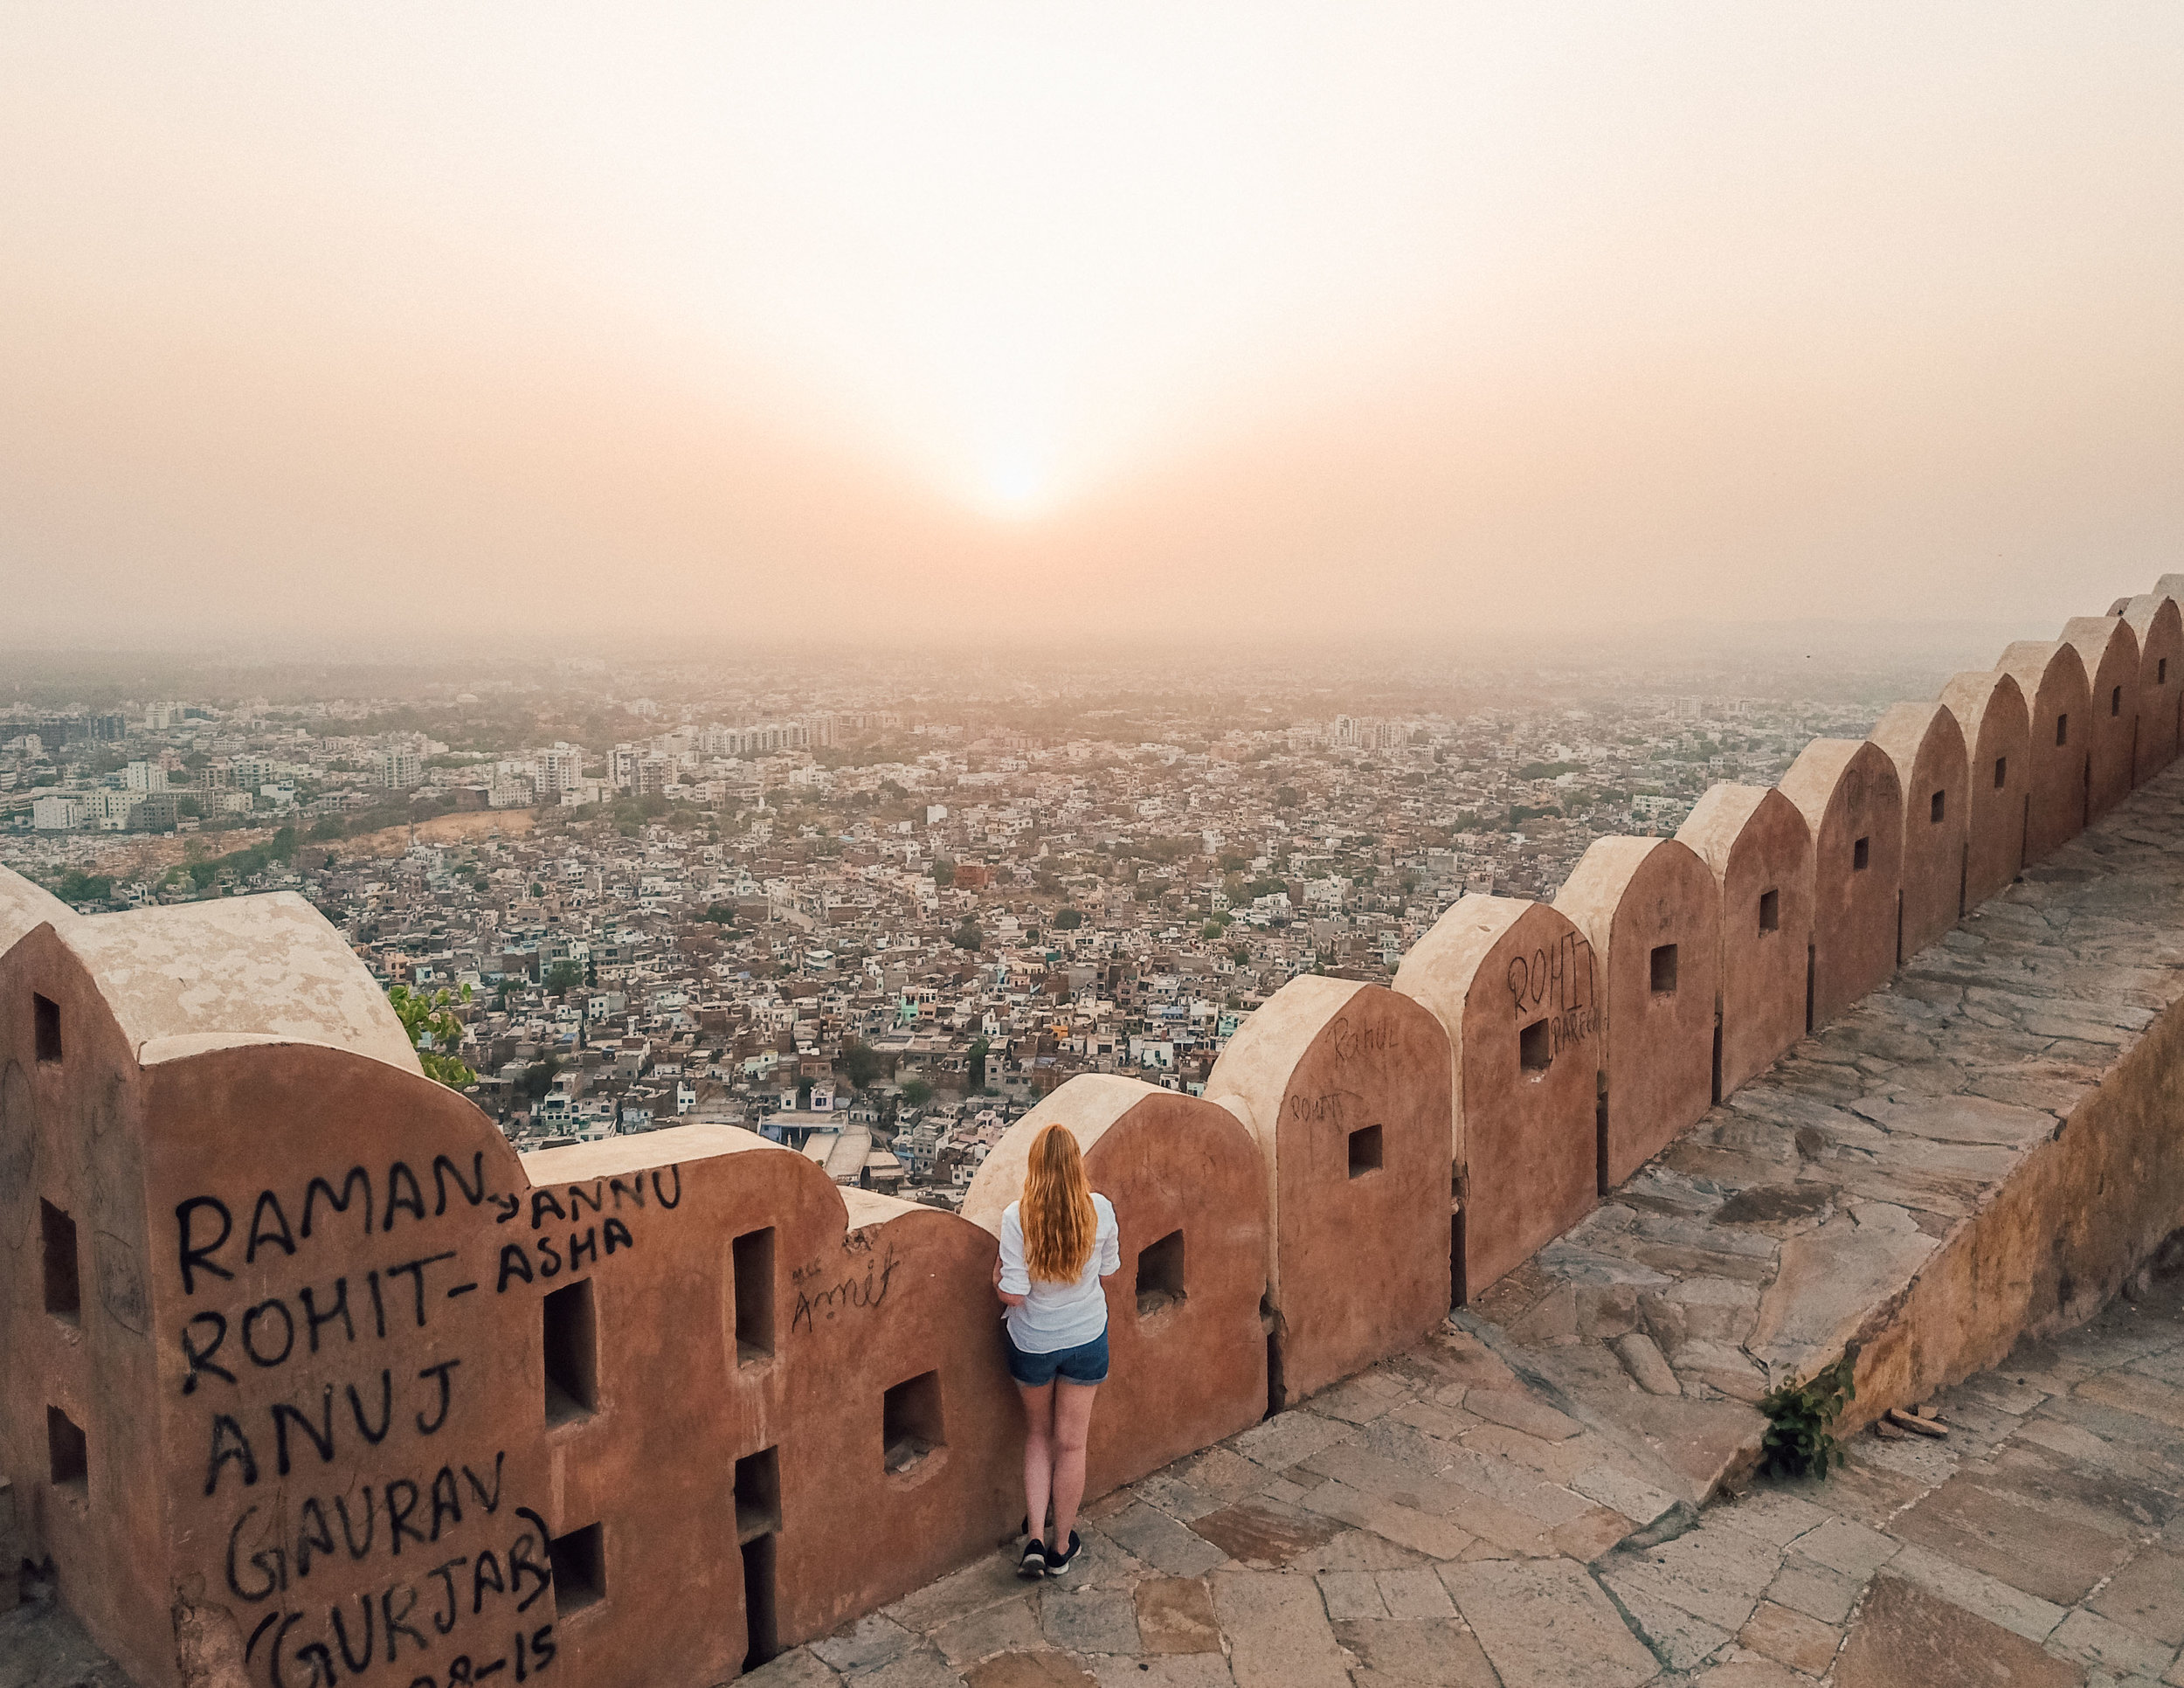 Places to visit in Jaipur - Nahagarh Fort